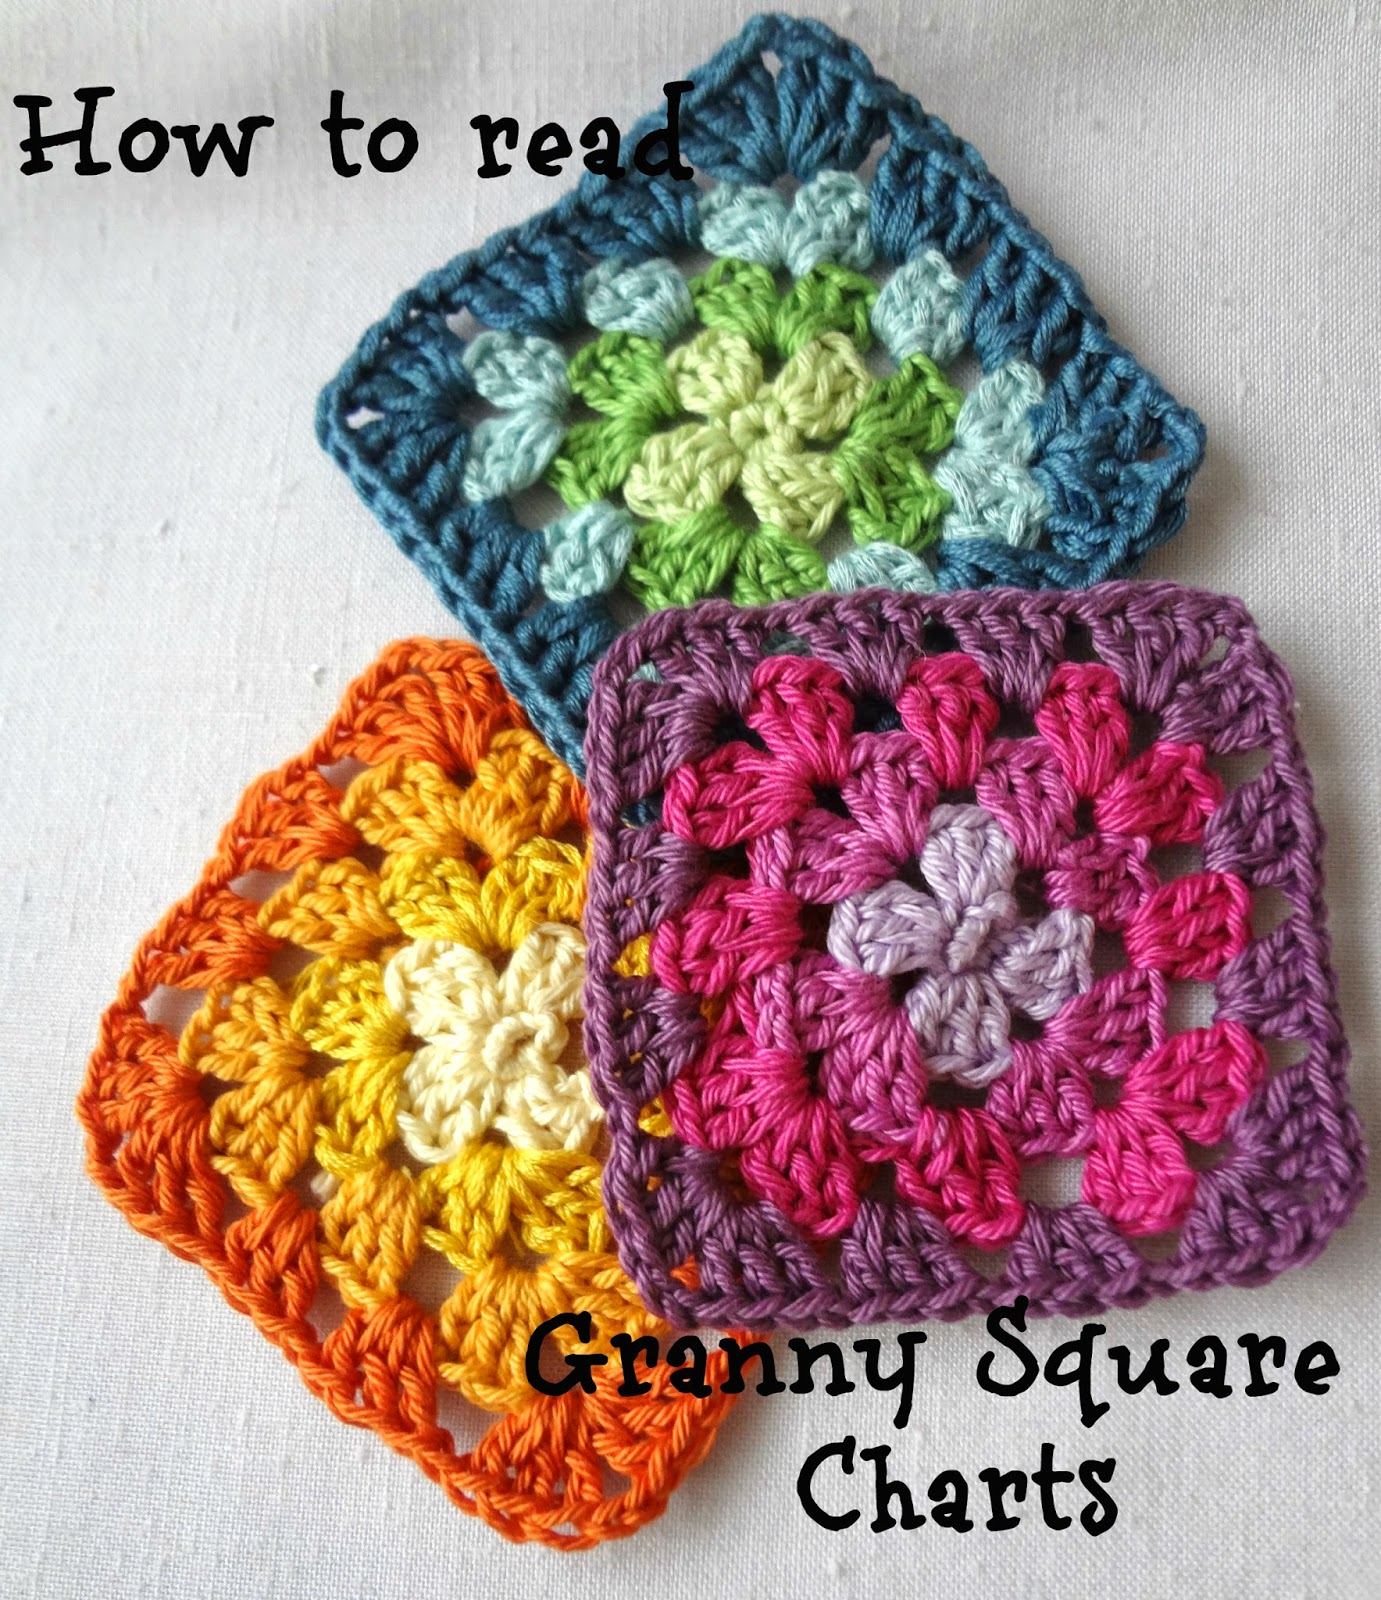 Little treasures how to read granny square charts heres the second part of how to read crochet charts and for this time i chose a basic granny square pattern i have in my pinterest board this is it pooptronica